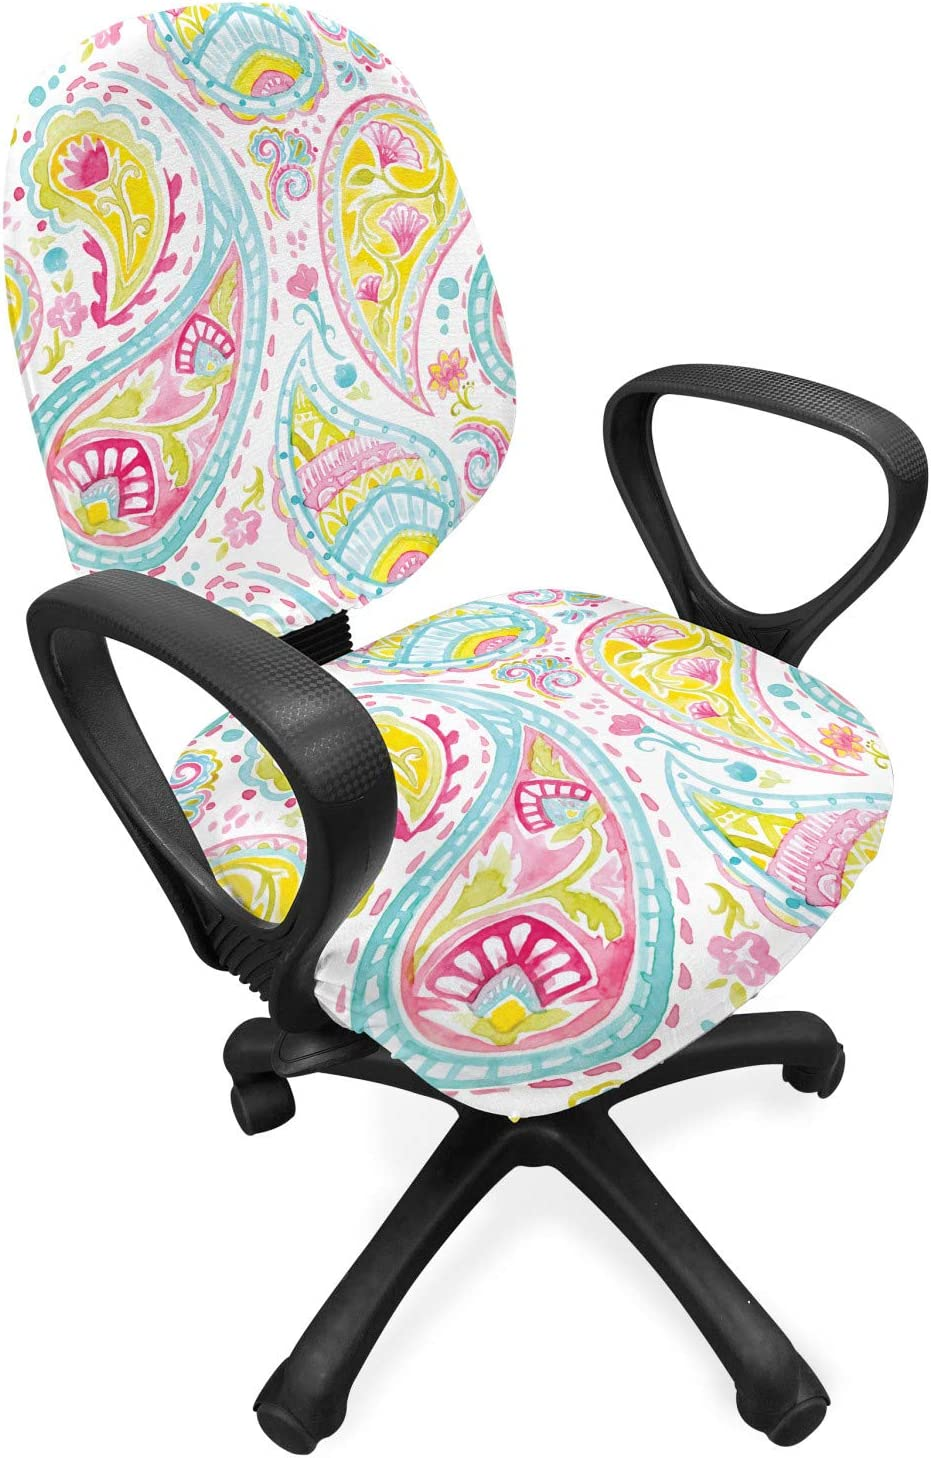 Ambesonne Artwork Office Chair Slipcover, Paisley Design in Watercolor Effect Brush Strokes and Flower Motifs Ornamental, Protective Stretch Decorative Fabric Cover, Standard Size, Green Aqua